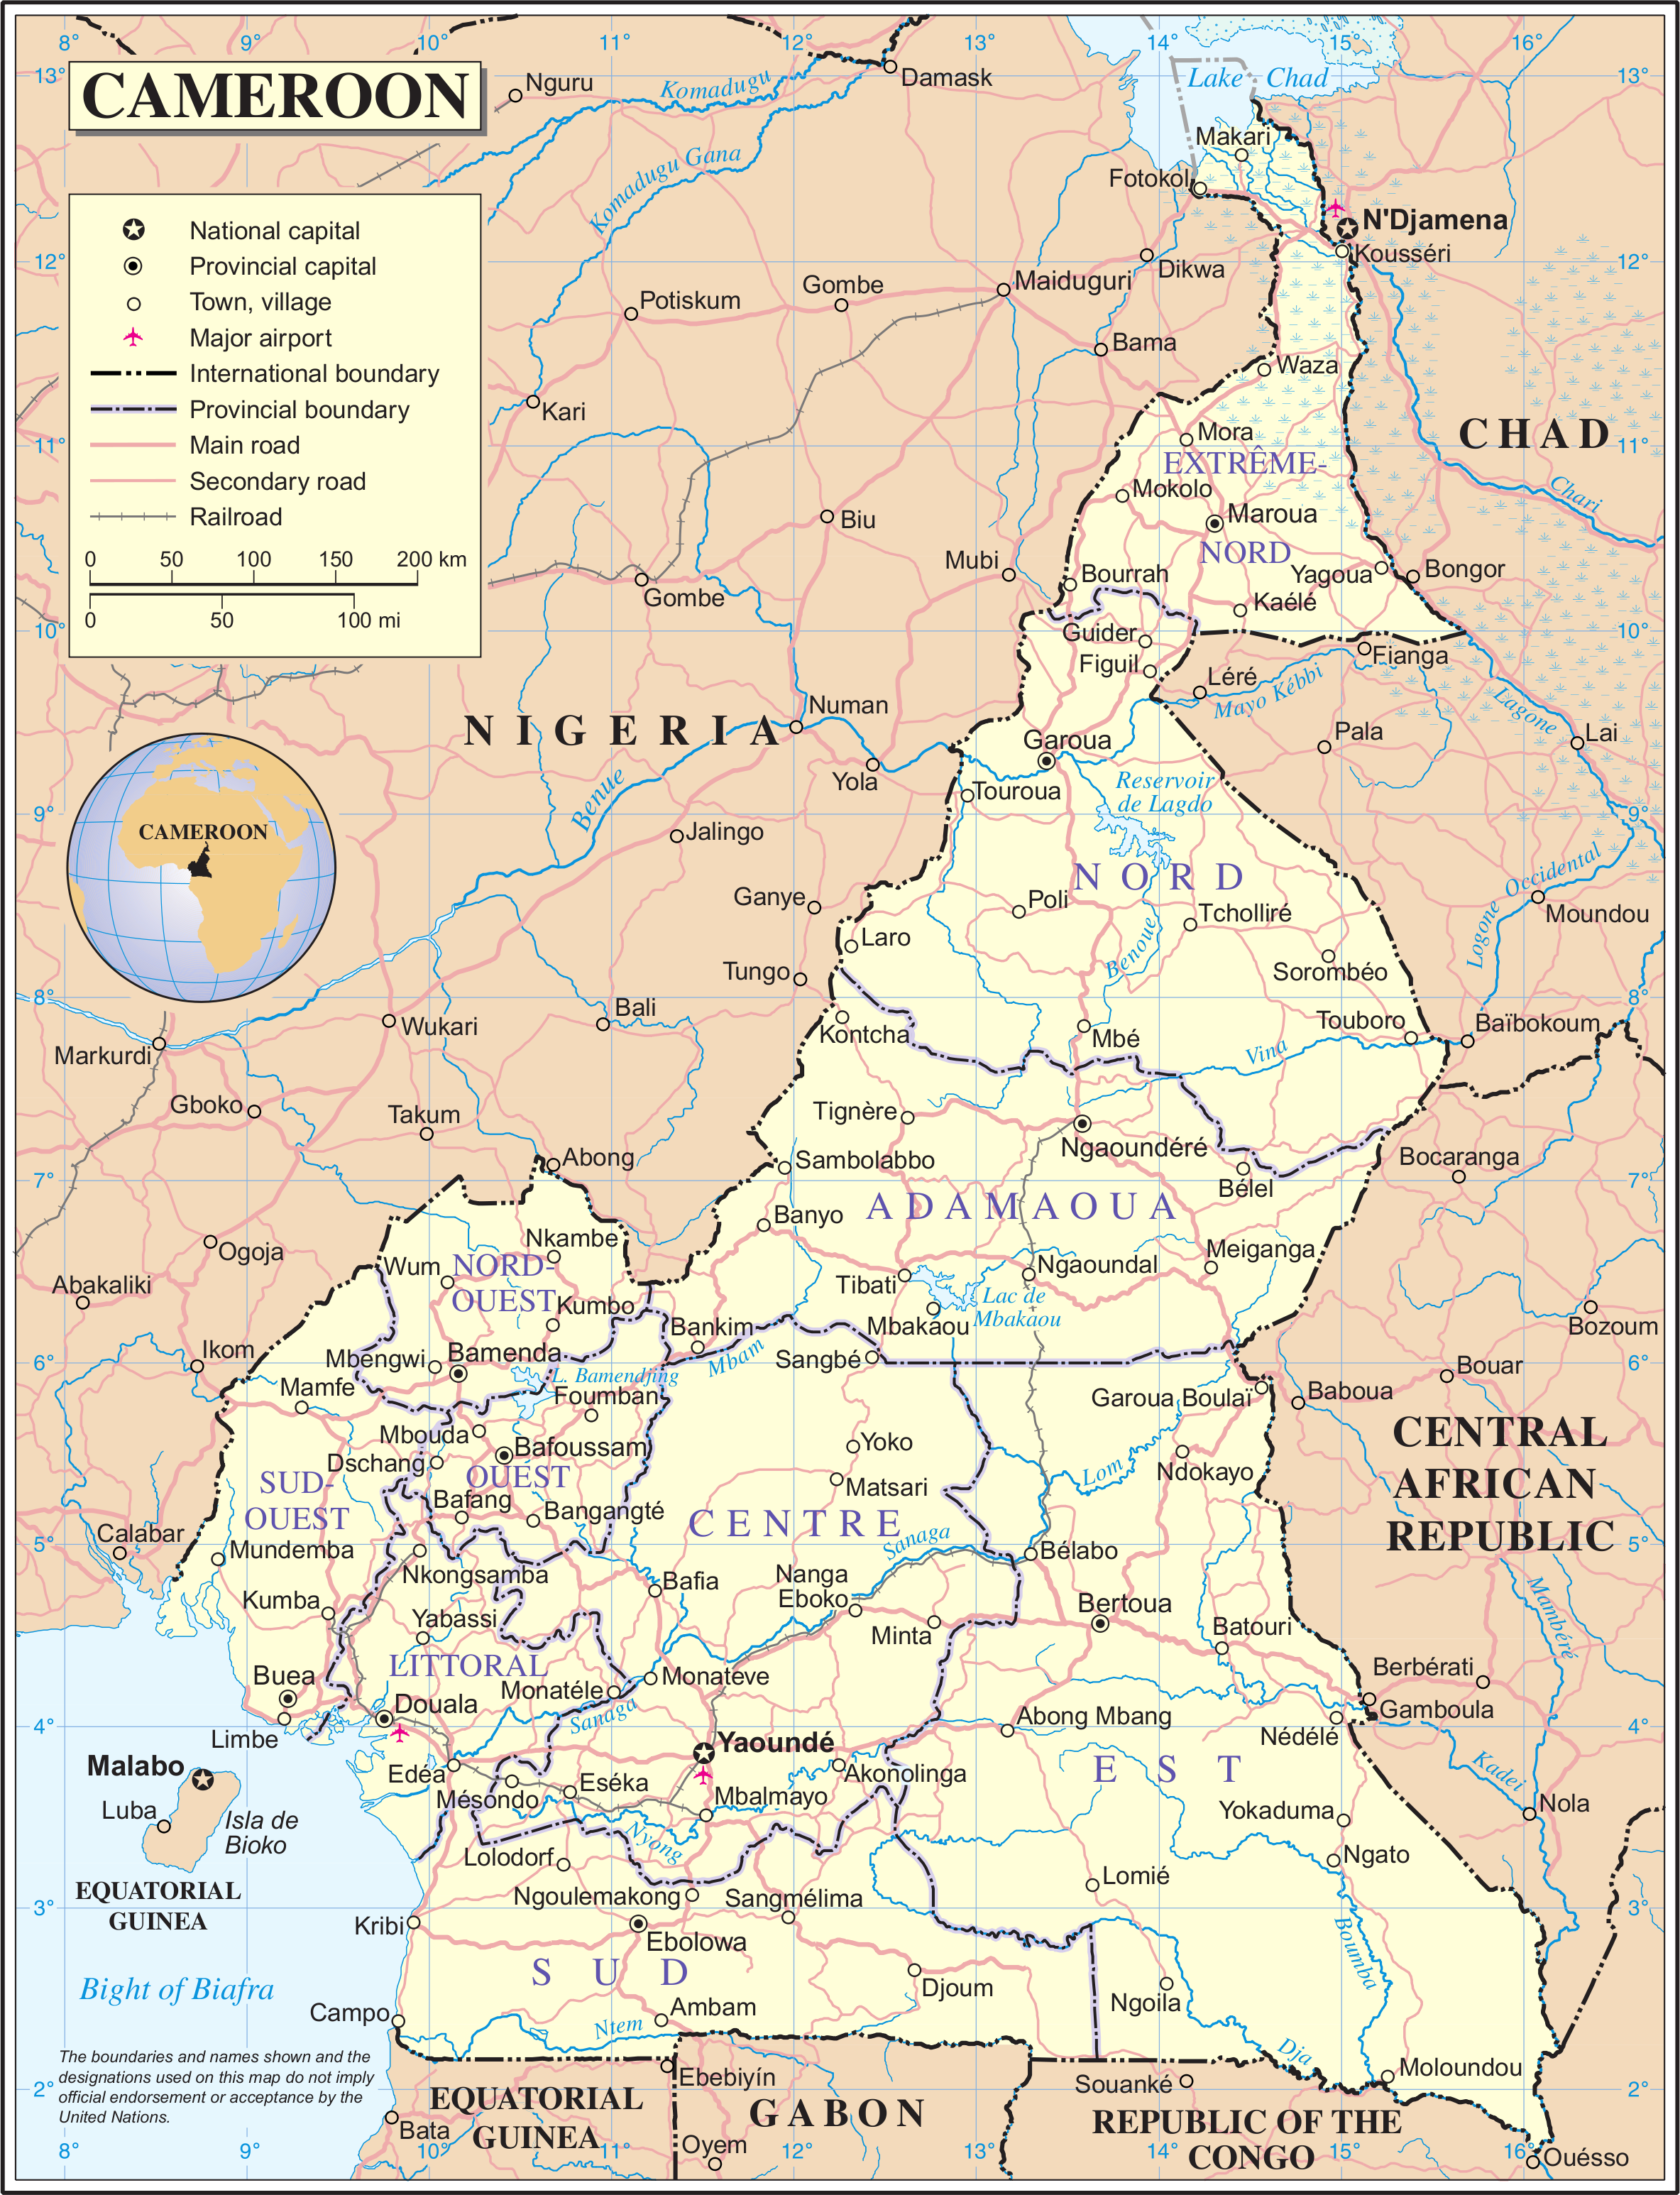 List of rivers of Cameroon - Wikipedia Cameroon Africa Map on cape verde atlantic ocean map, douala cameroon map, cameroon map with no words, mt cameroon map, cameroon language, cameroon ethnic groups, cameroon history, cameroon ebola, cameroon flag, www.africa map, lake nyos map, cameroon forest, croatia map, cameroon airport map, cameroon chad map, cameroon yearly income, cameroon morocco map, cameroon terrorism,